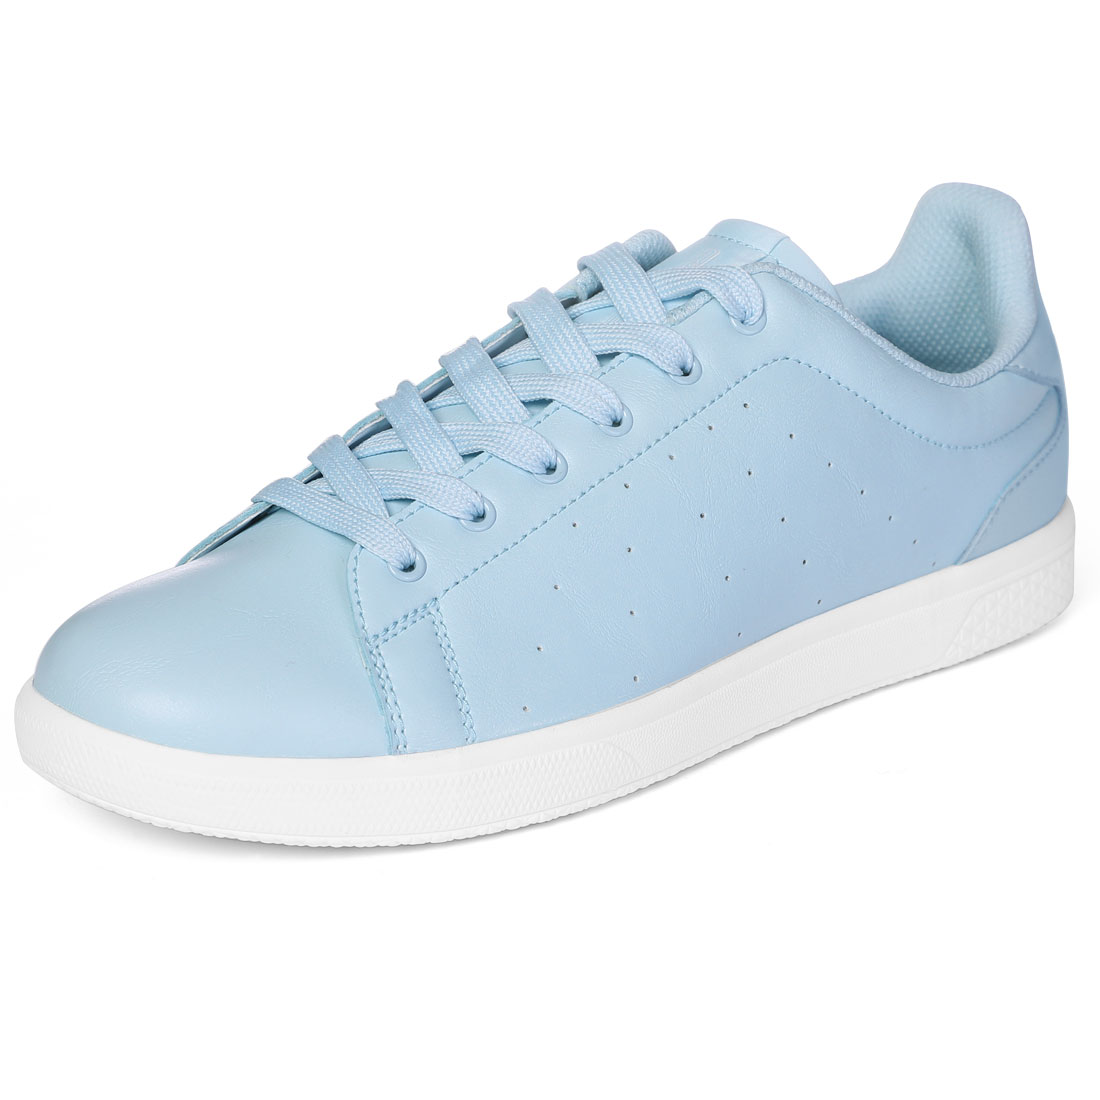 PYPE Women Round Toe Low Top Lace Up Sneakers Blue US 5